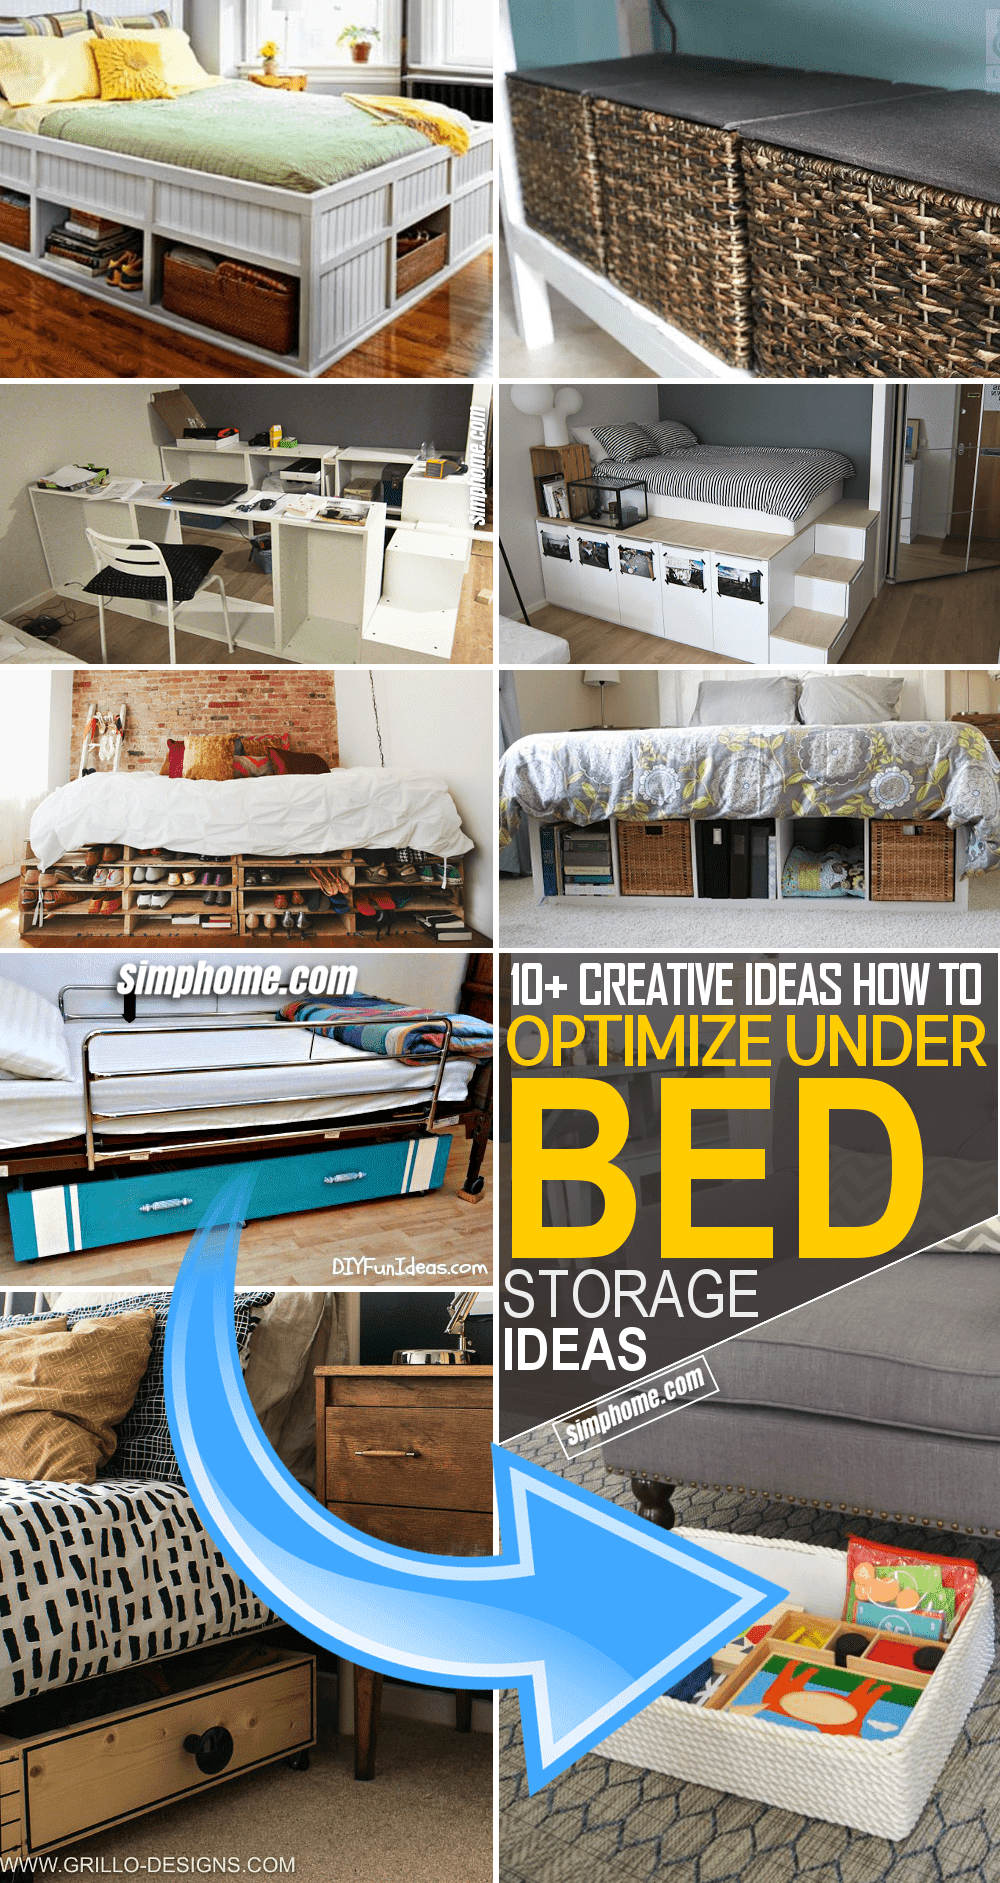 1.Tap the Space under Your Bed by Simphome.com